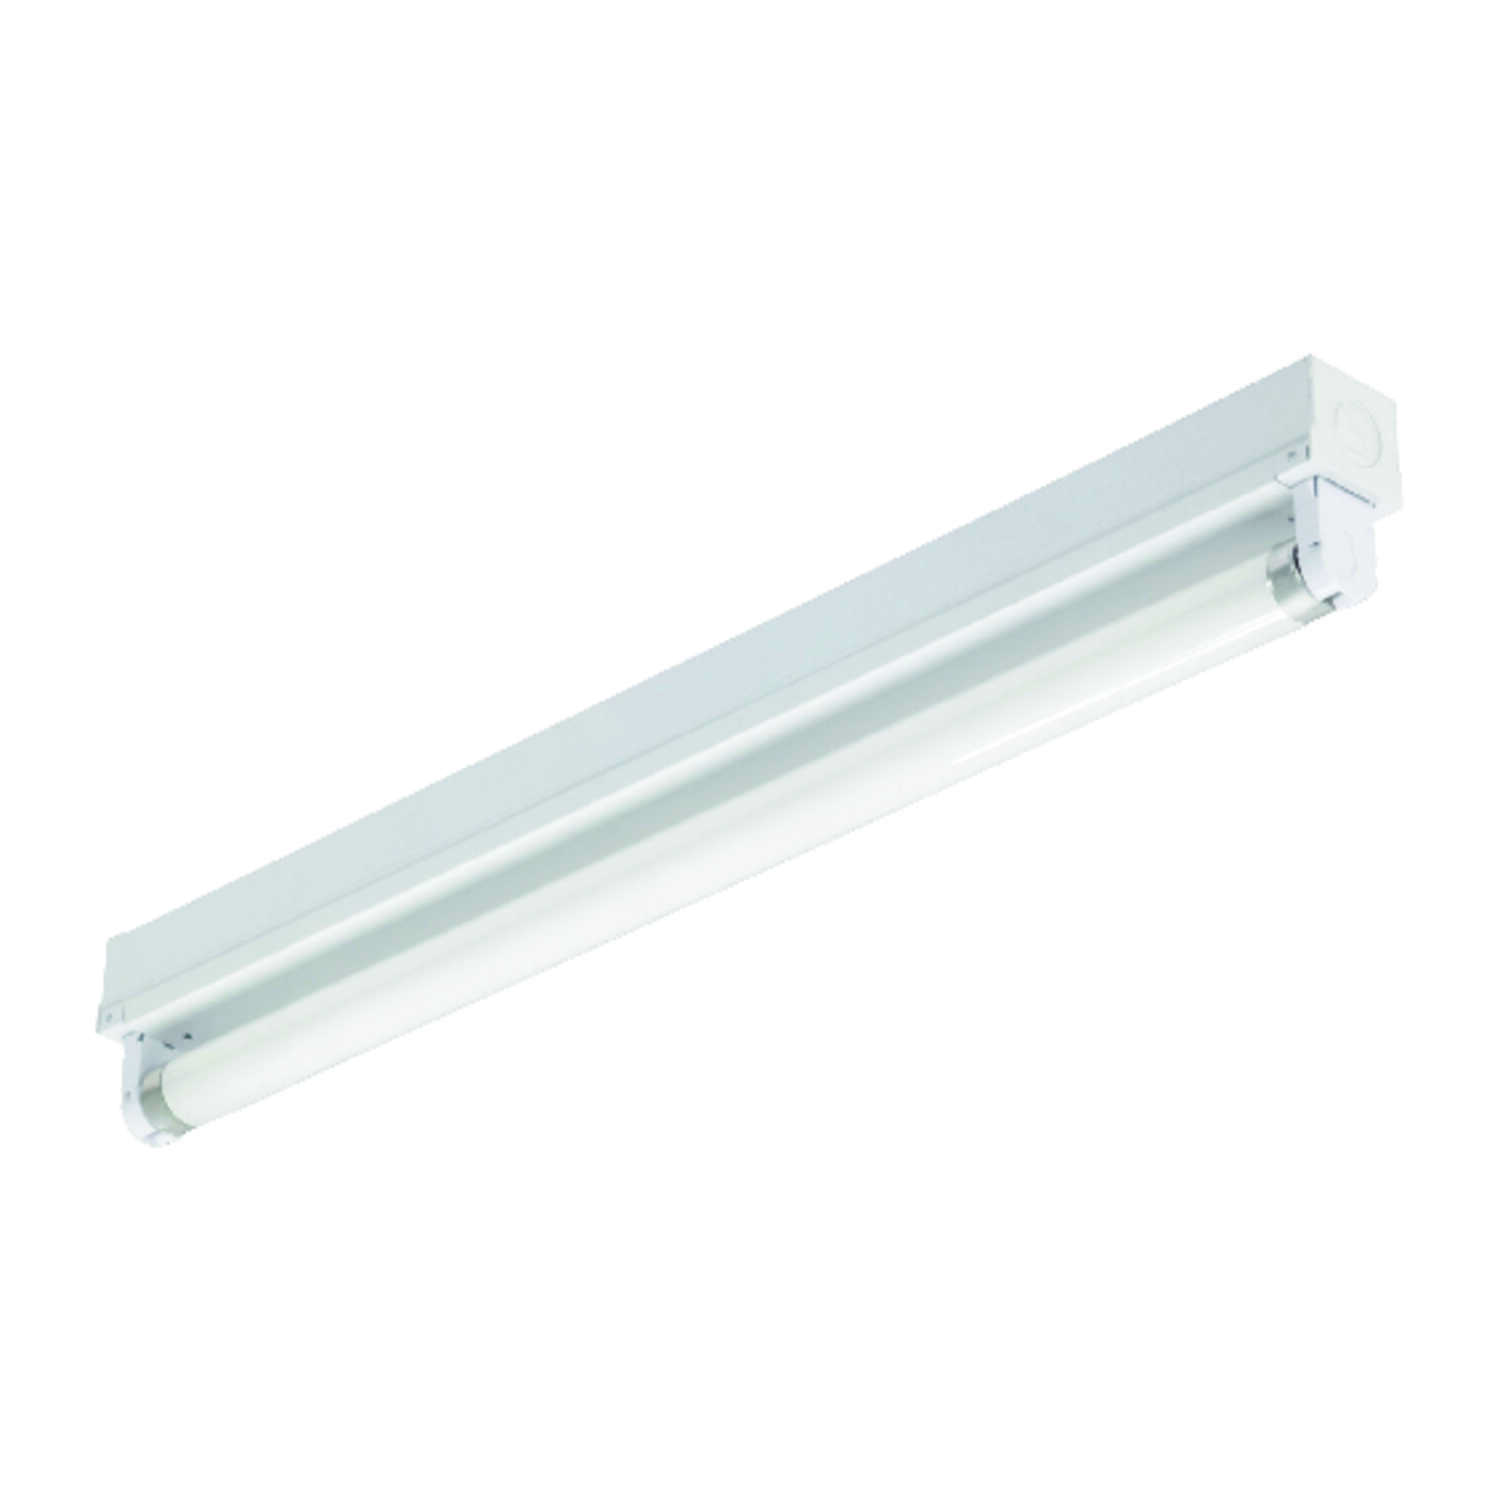 Lithonia Lighting  18 in. L White  Hardwired  Fluorescent  Strip Light